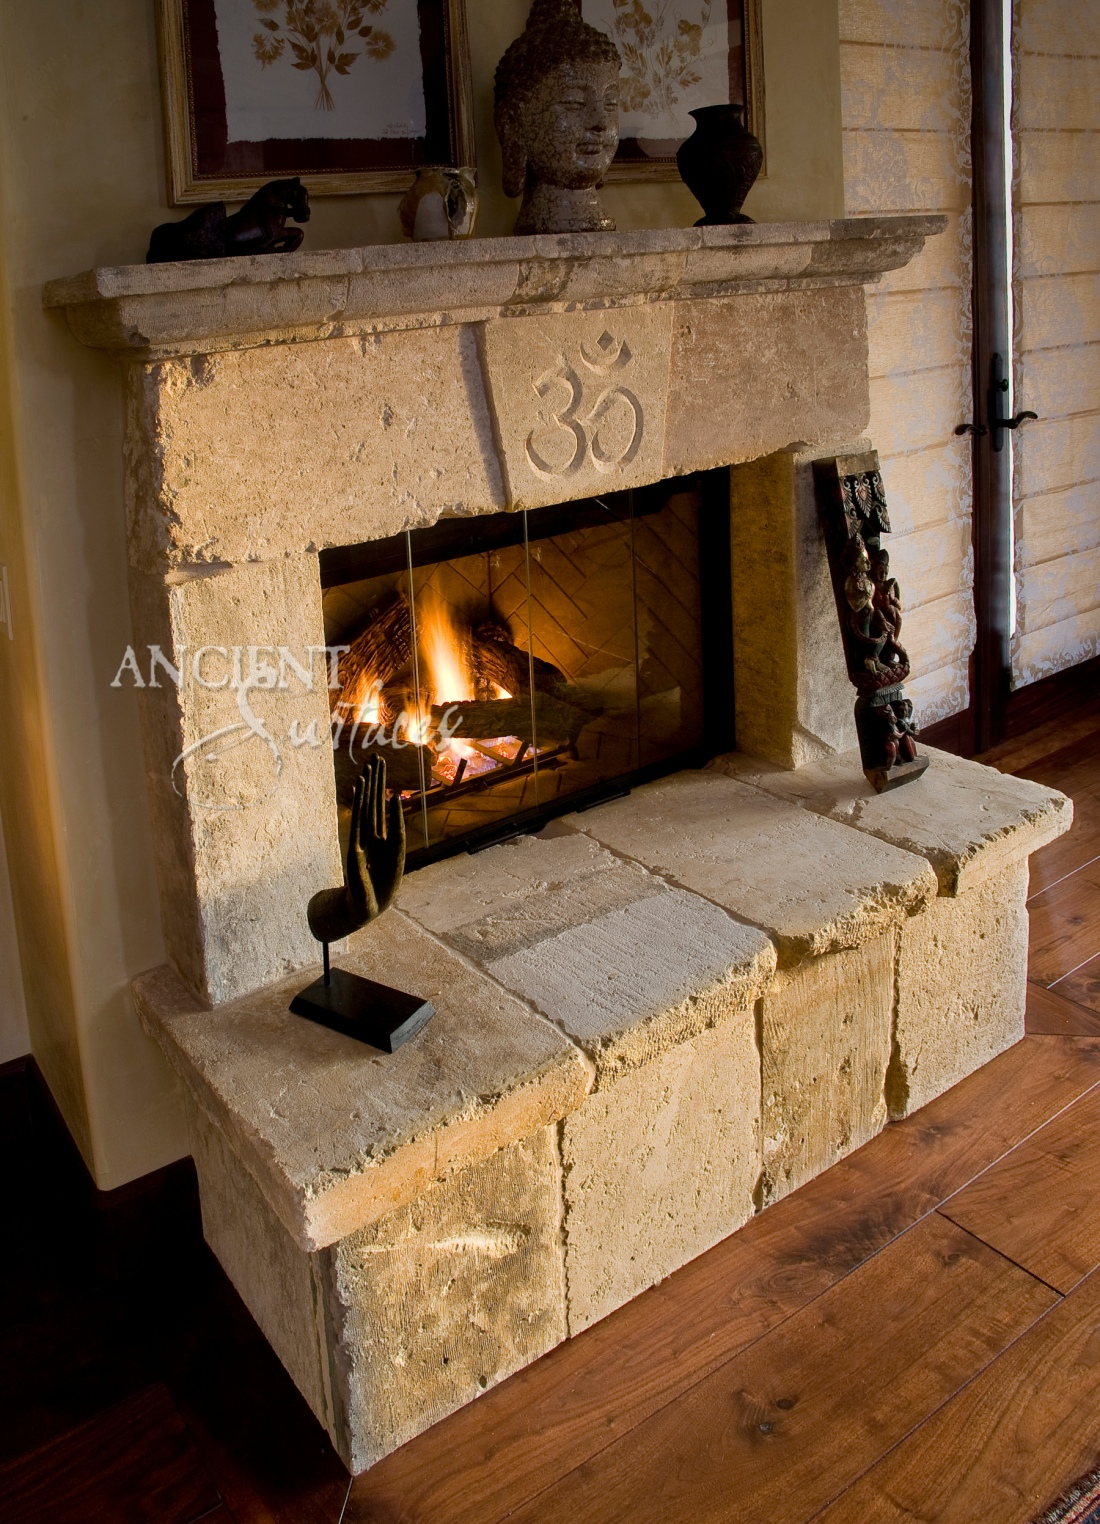 A simple Antique Old World Stone Fireplaces, with the Om yoga sign carved and etched on the center of its keystone by Ancient Surfaces